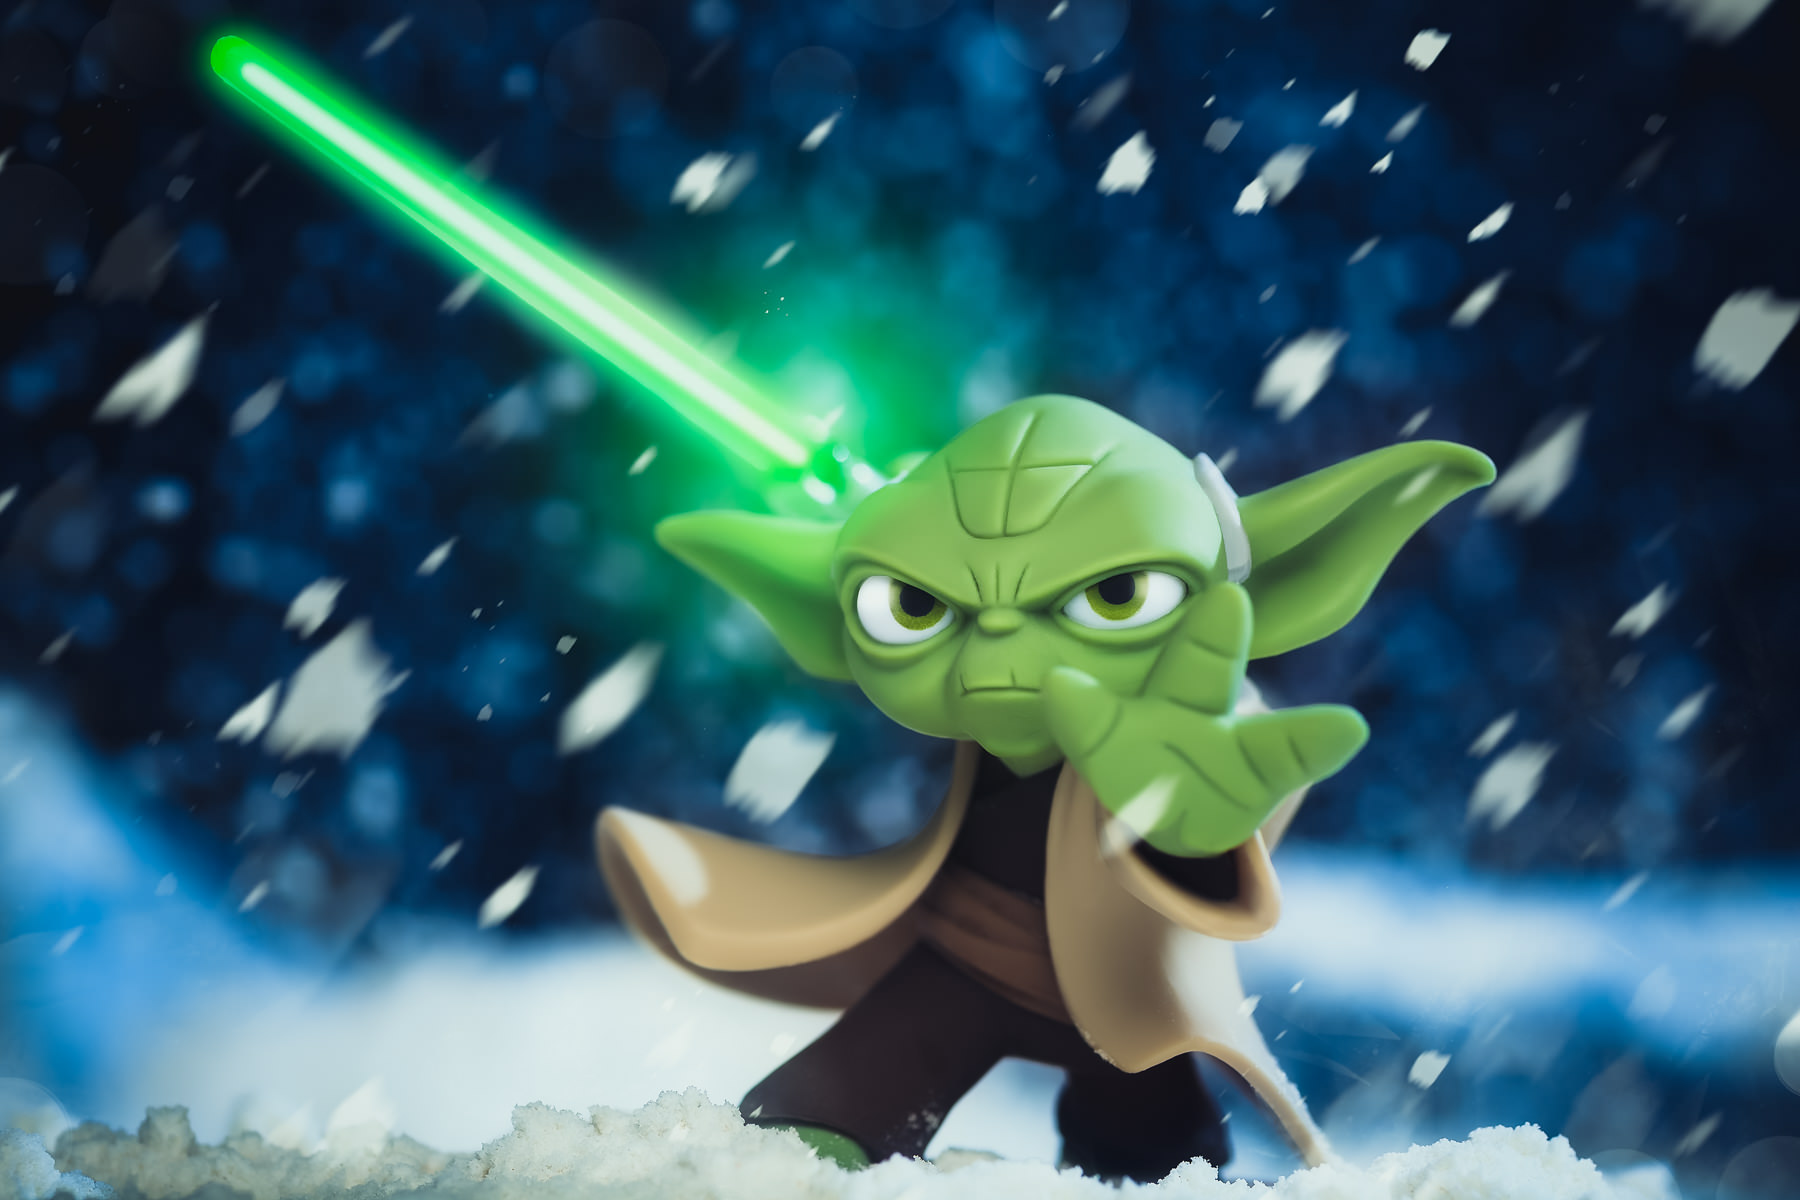 Disney Infinity Star Wars Yoda